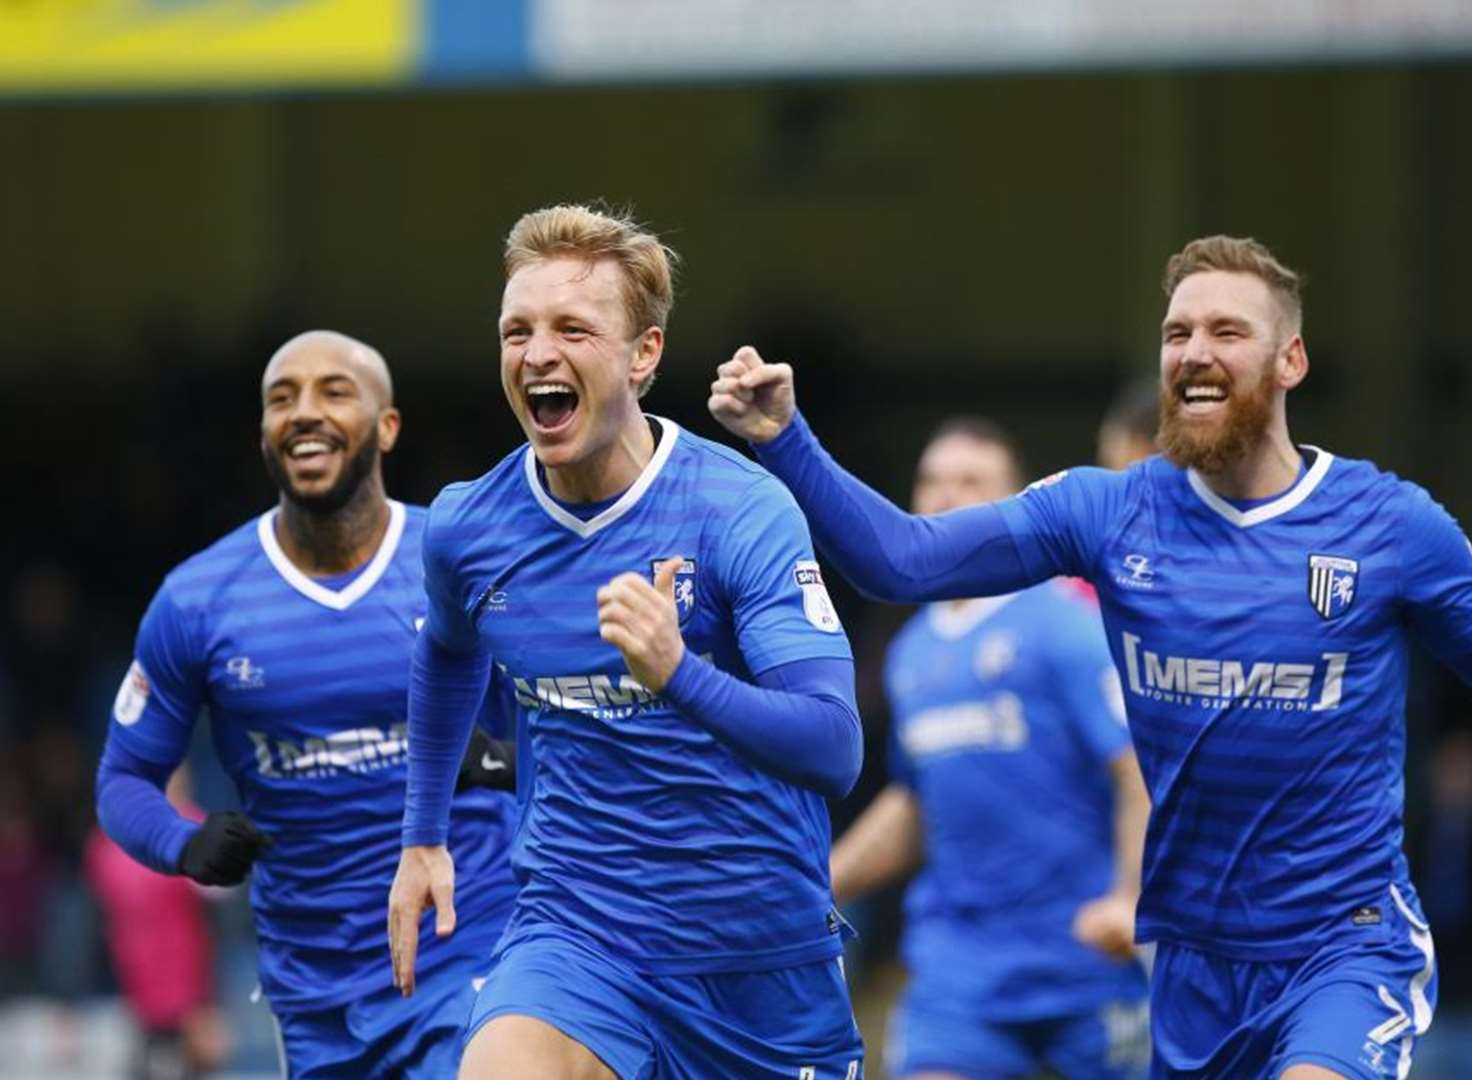 Three points at last for Gills